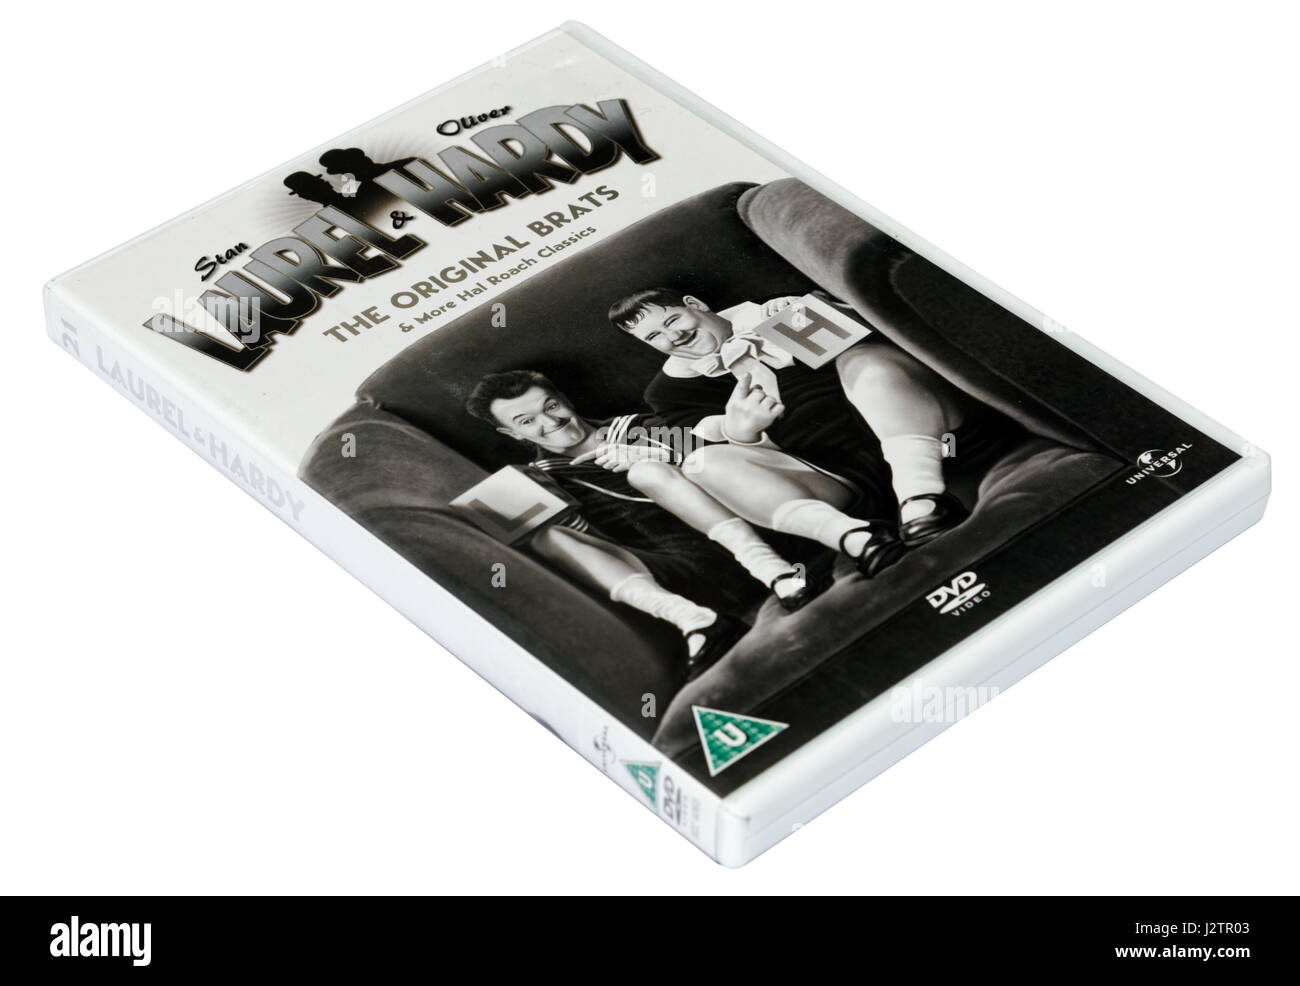 The Original Brats: A Laurel and Hardy DVD of short films - Stock Image